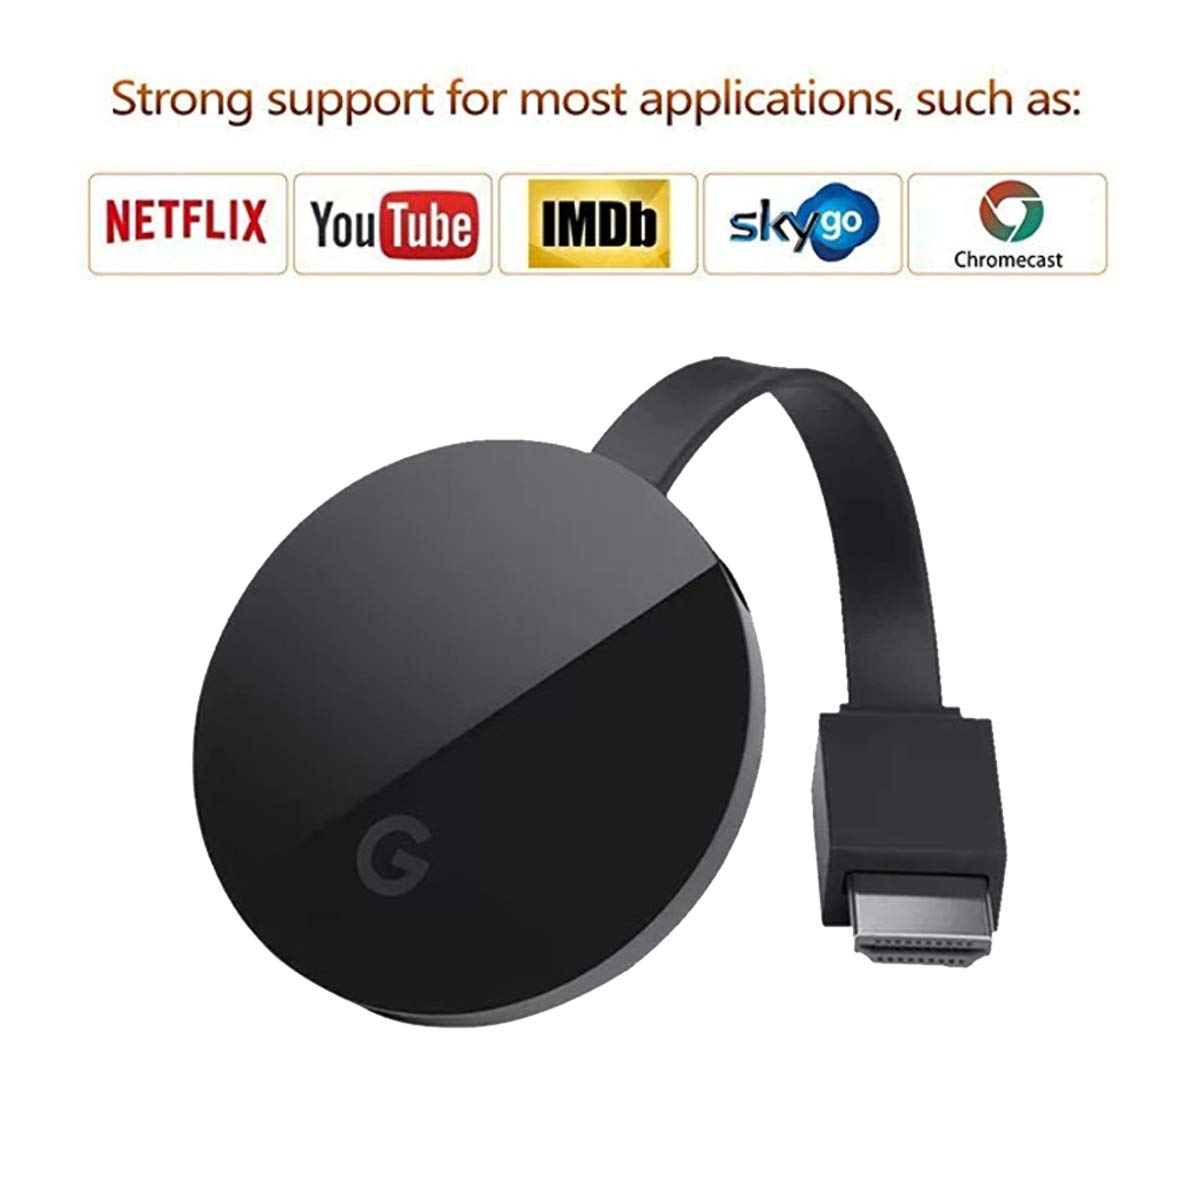 PHADEN Miracast Wireless Display Receiver 1080P HDMI WiFi Media Streamer Adapter Support Chromecast YouTube Netflix Hulu Plus Airplay DLNA TV Stick for Android/Mac/iOS/Windows